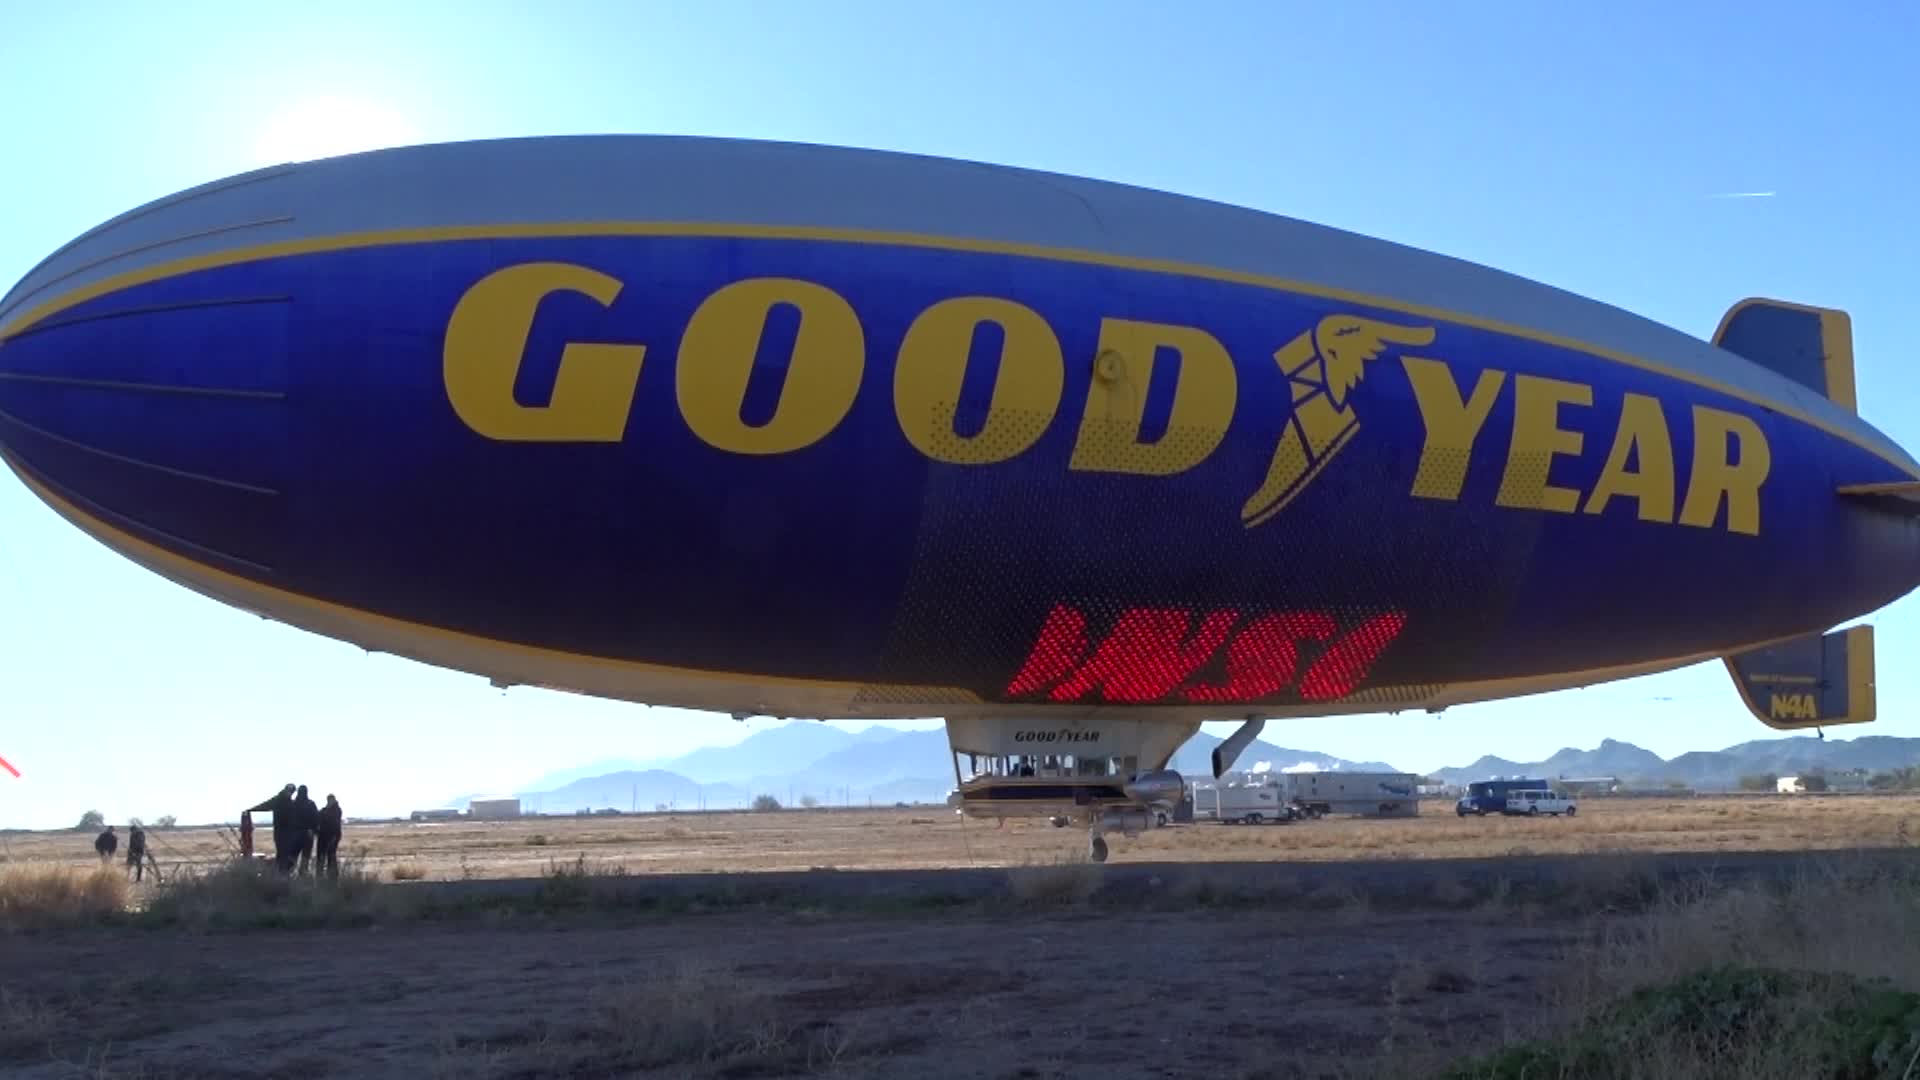 "The Goodyear Blimp ""Spirit of Innovation"" uses its Eagle Vision sign to announce that The Goodyear Tire & Rubber Company has renewed its title sponsorship of the Cotton Bowl with a multiyear deal."